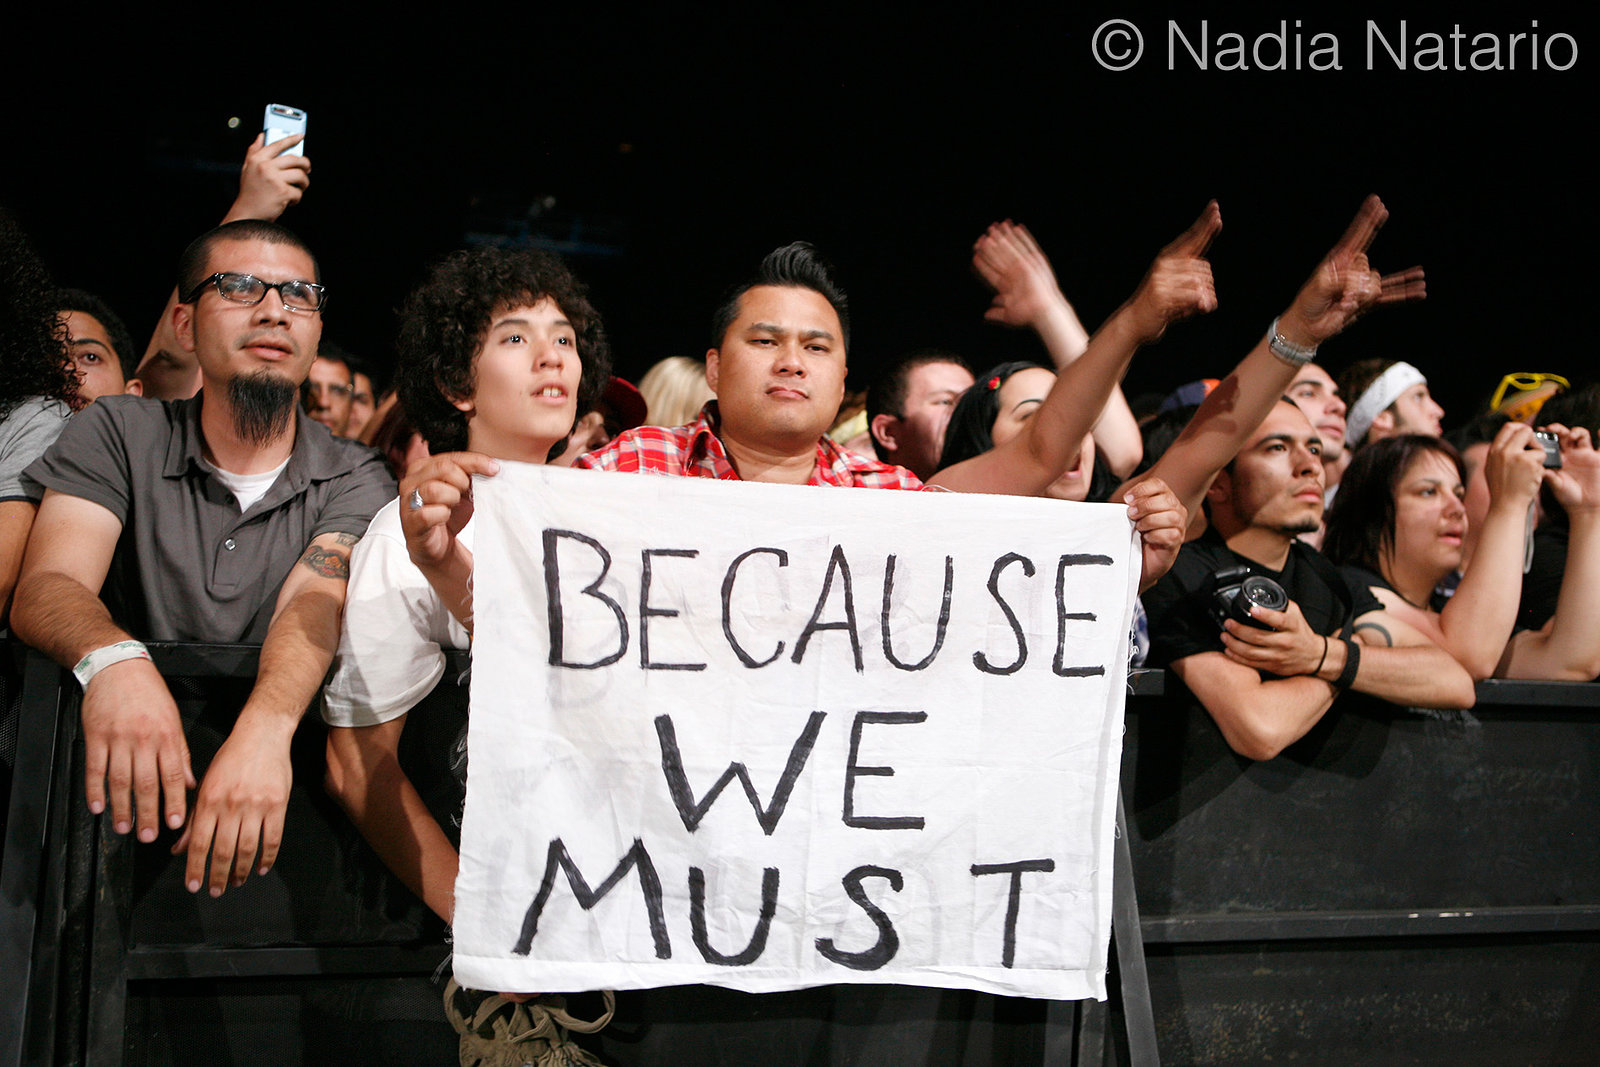 Morrissey Fans at Coachella 2009